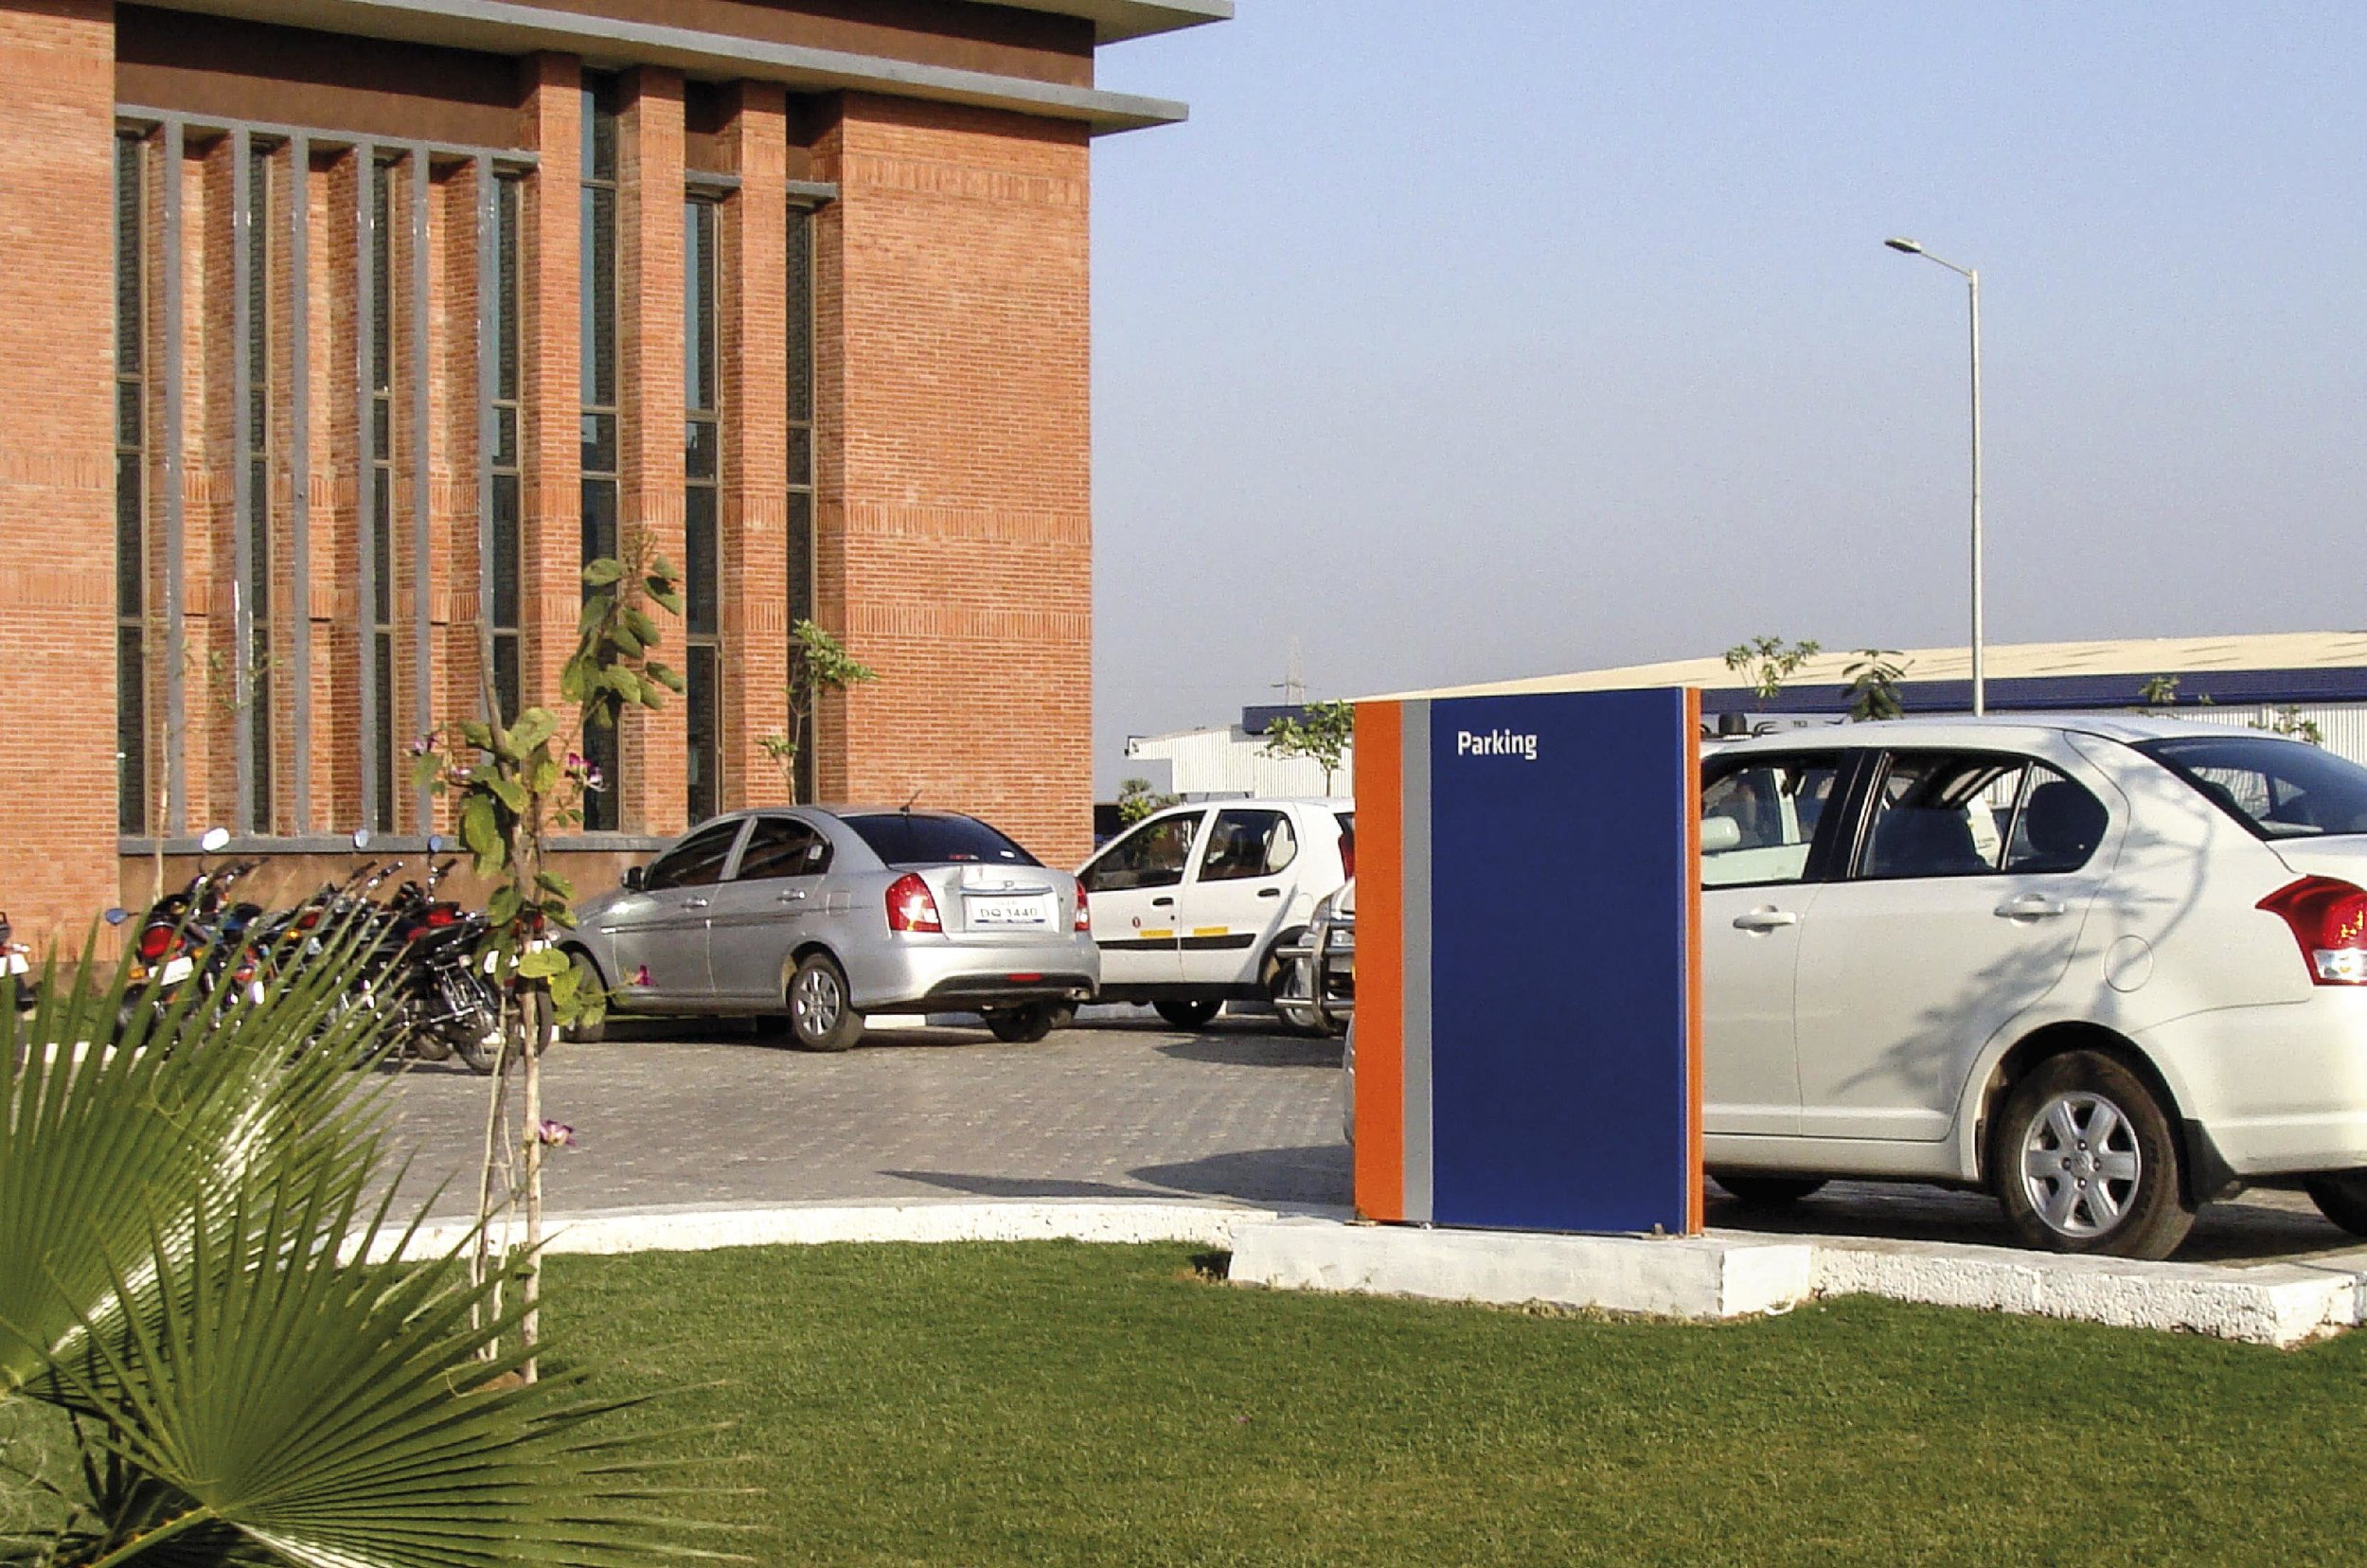 CEAT factory Signages_Branded Spaces_Elephant Design_3.jpg